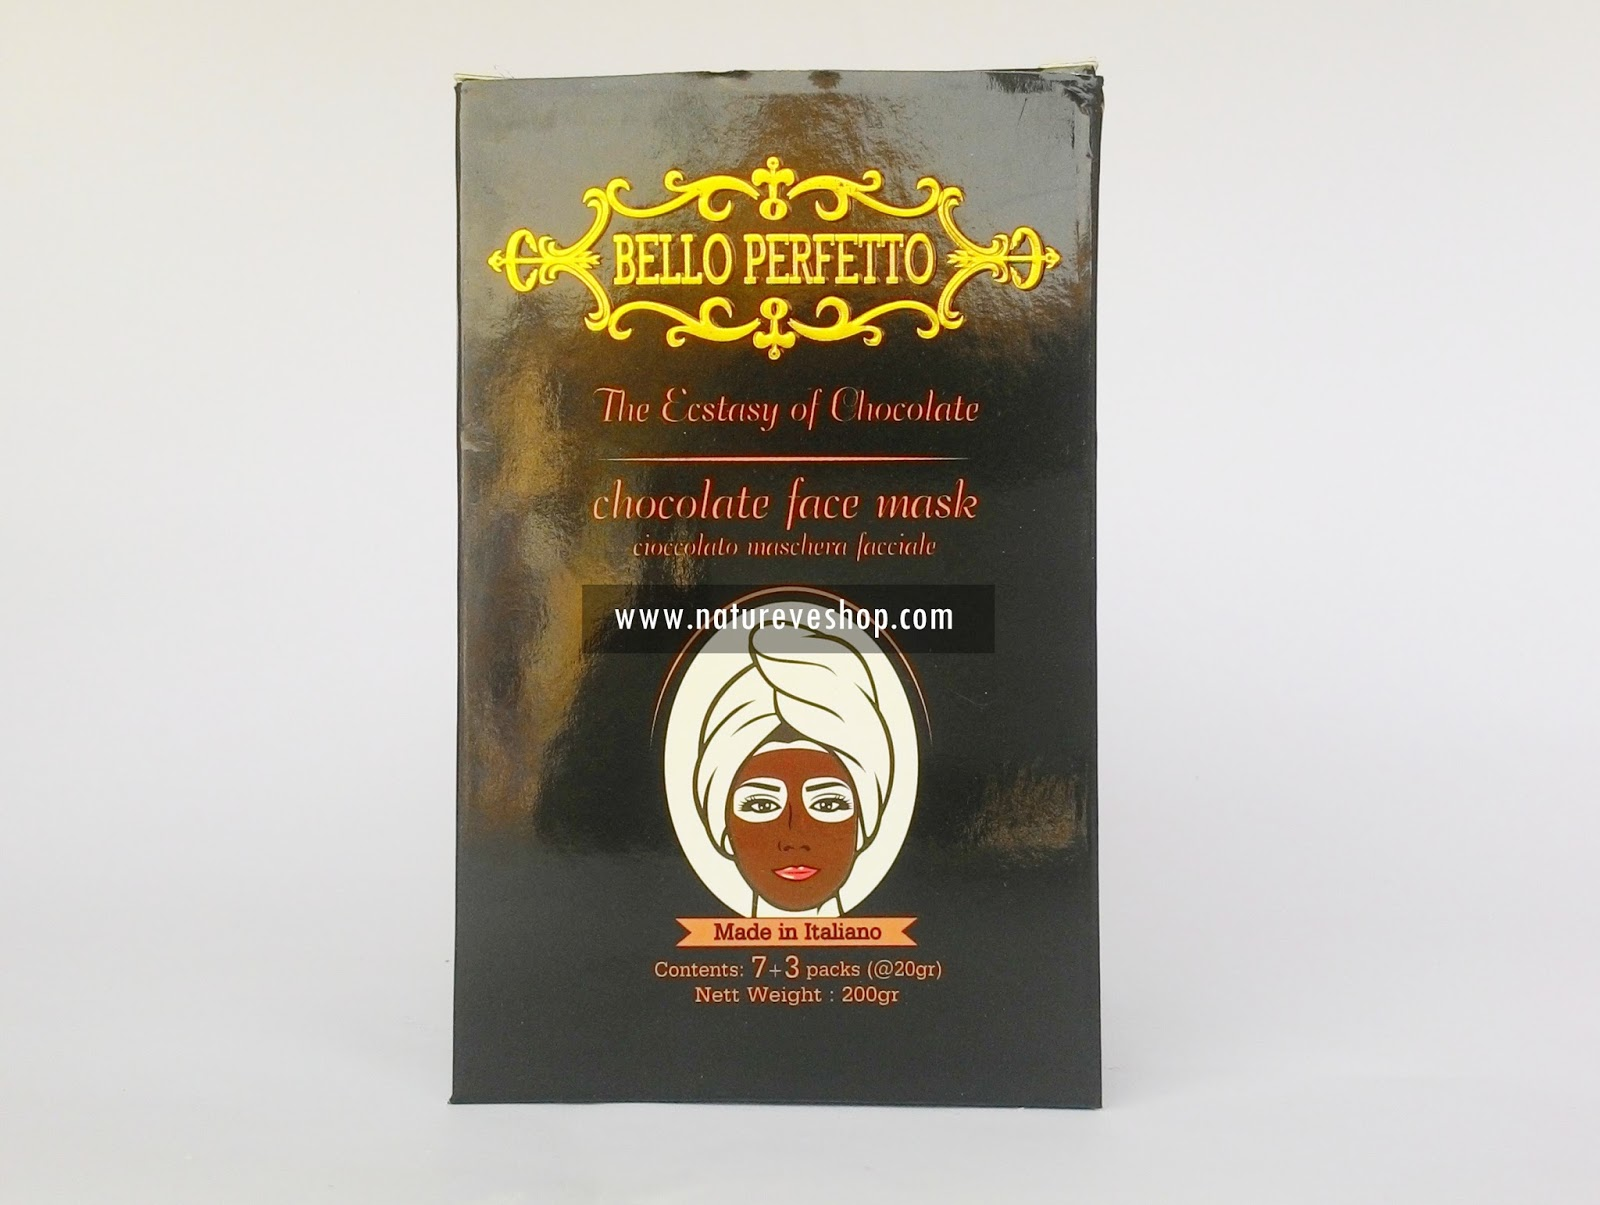 Masker Wajah Bello Perfetto Extract Chocolate